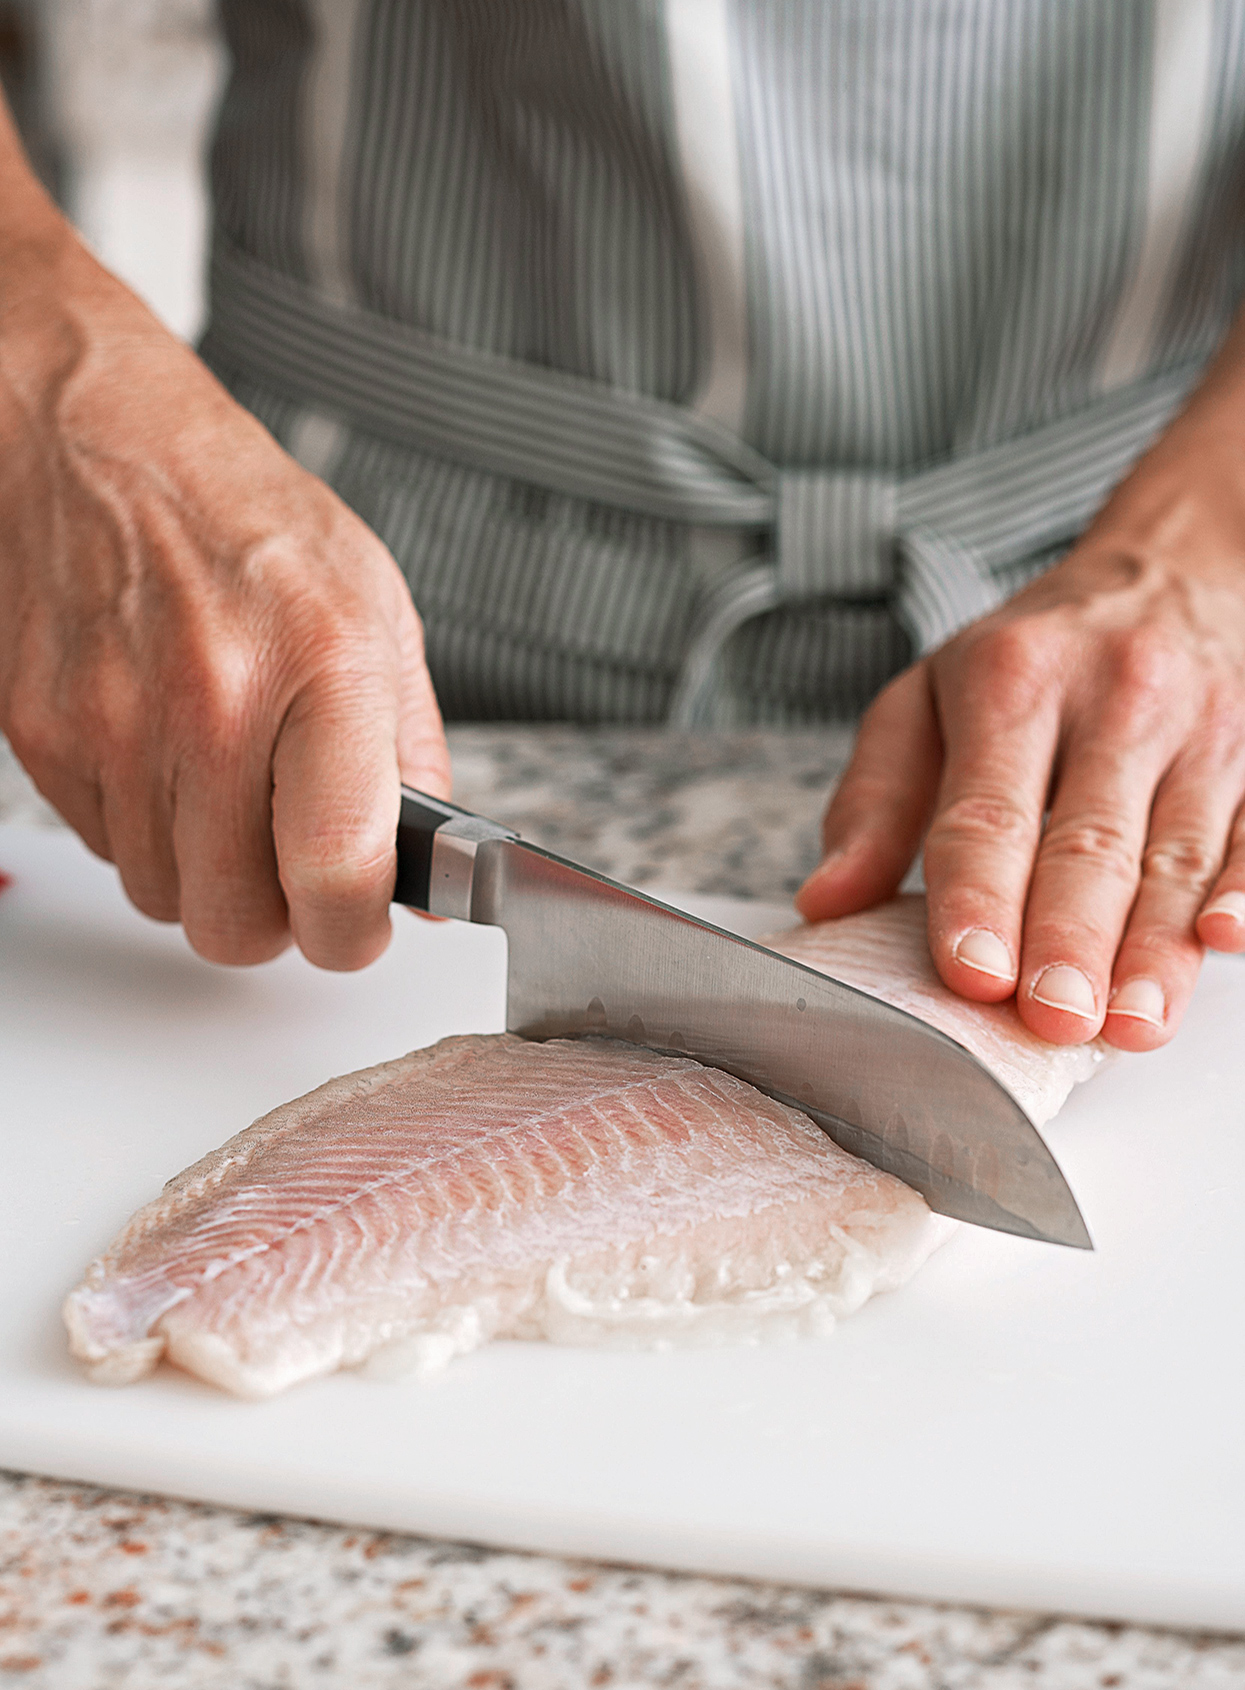 cutting fish fillet with knife on cutting board